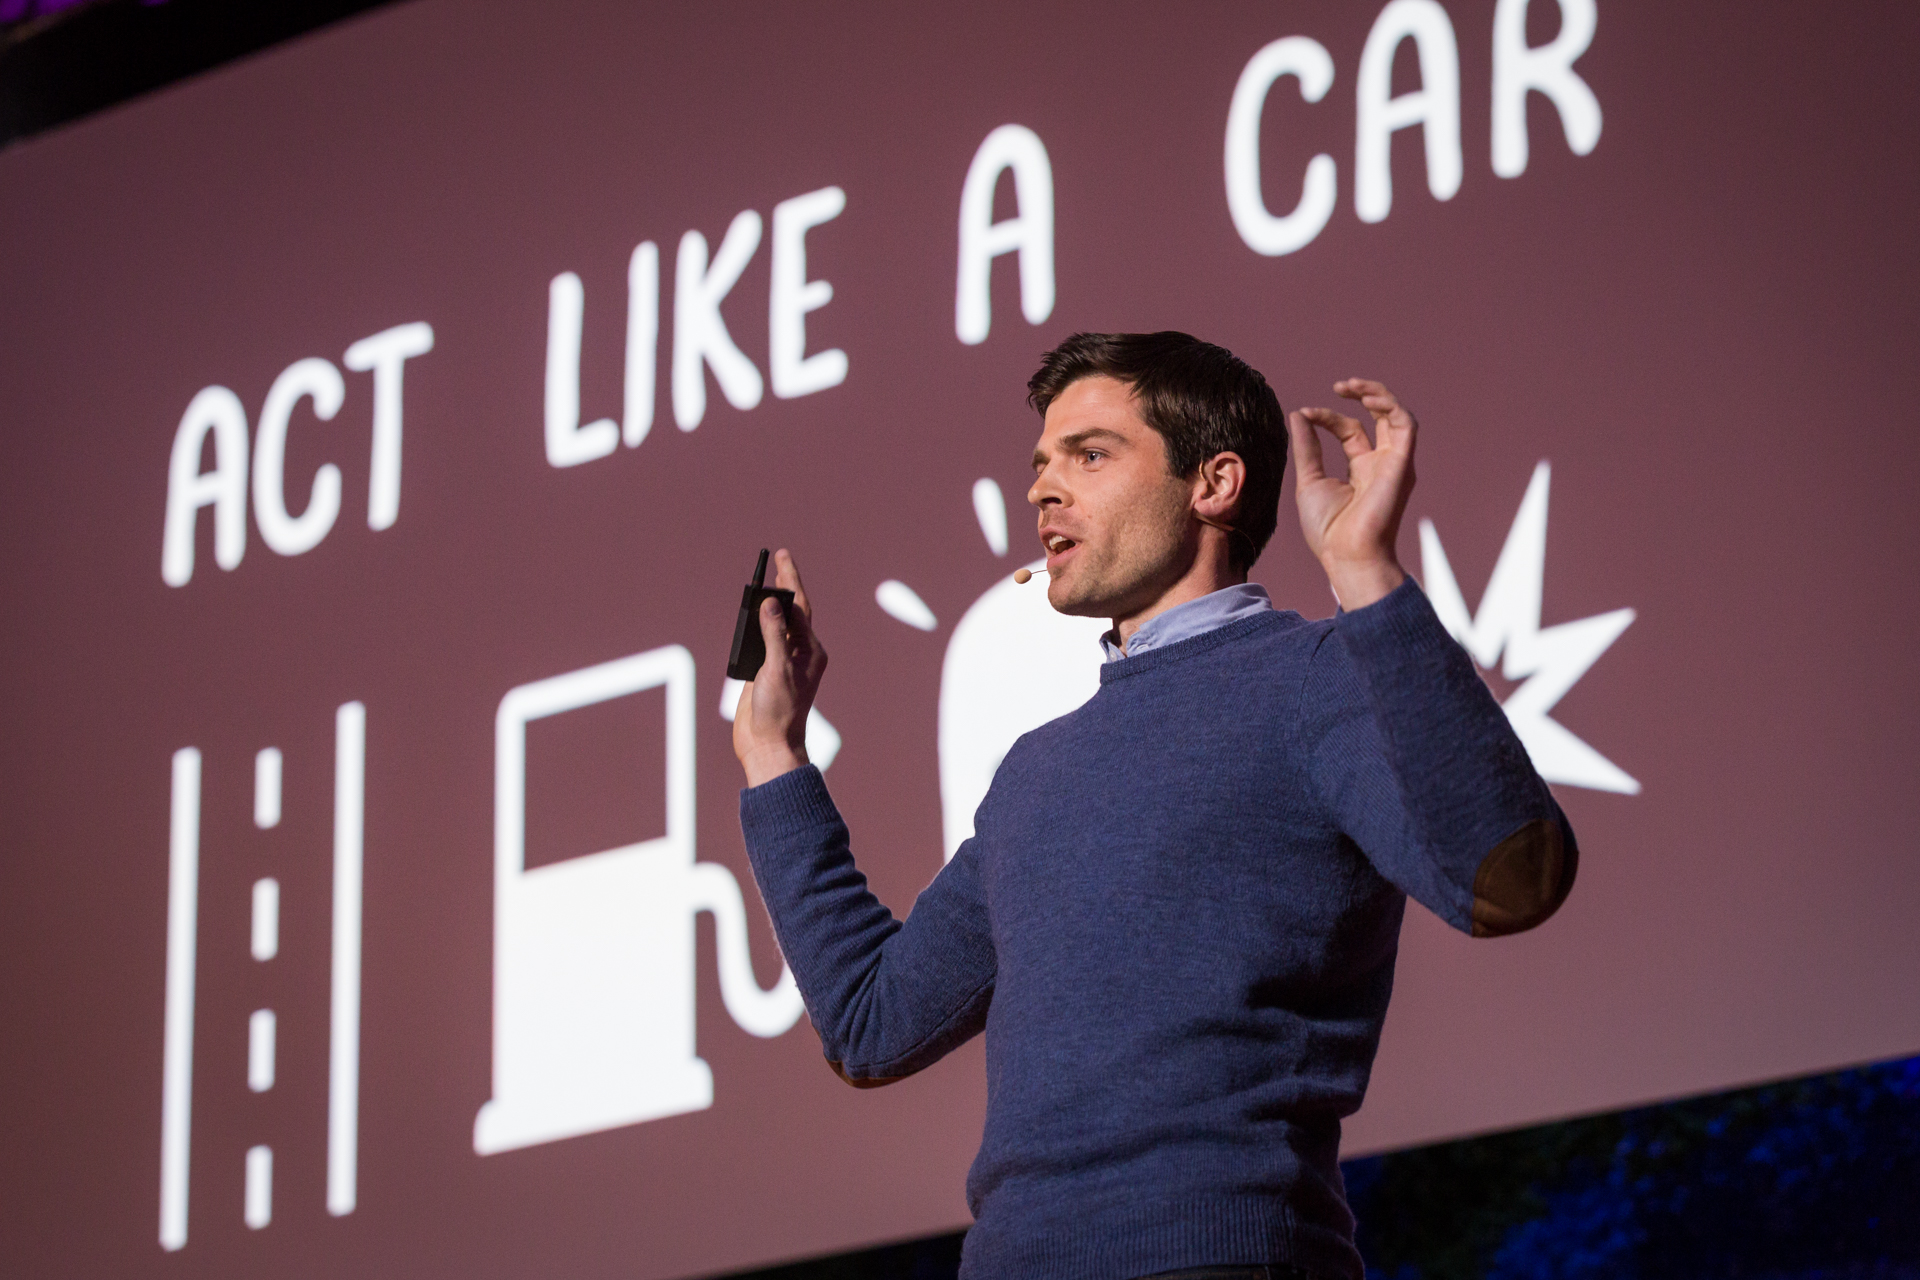 """Nathan W. Pyle's motto for New York City sidewalks: """"Act like a car."""" Photo: Ryan Lash/TED"""